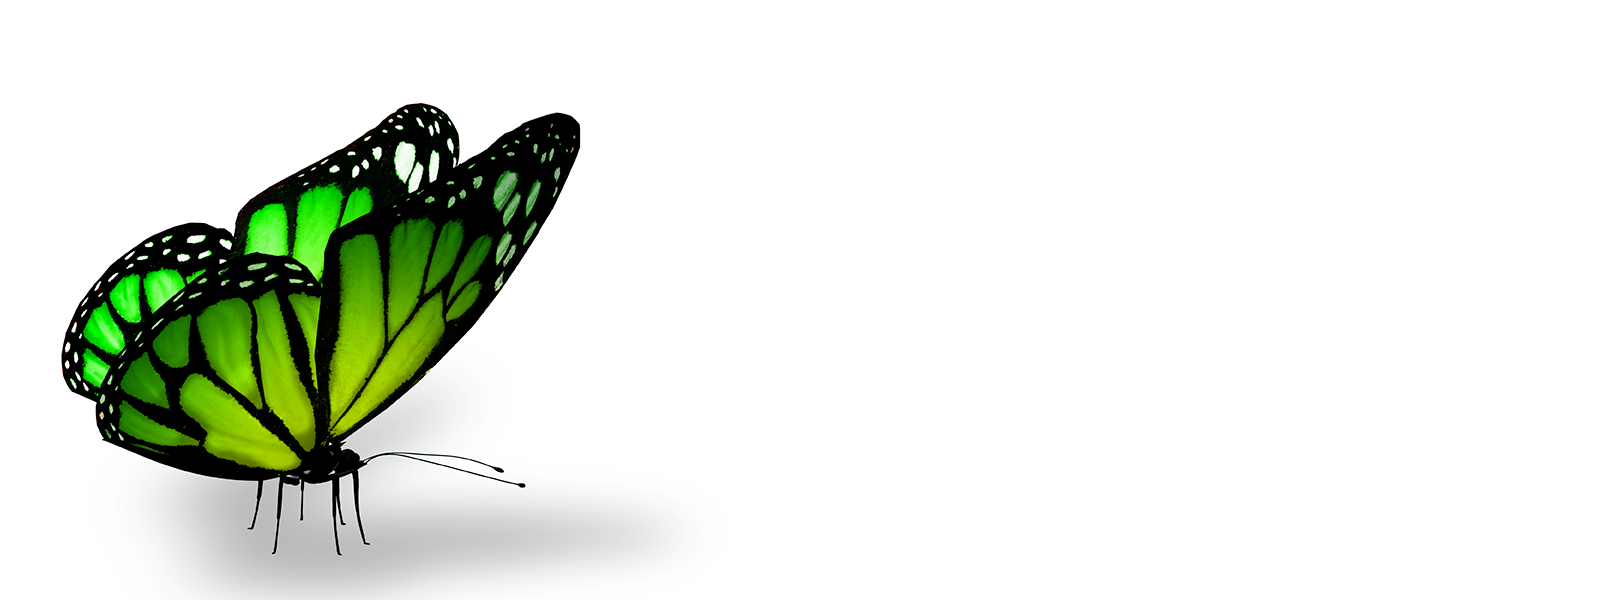 ovnp_headerimages_butterfly3